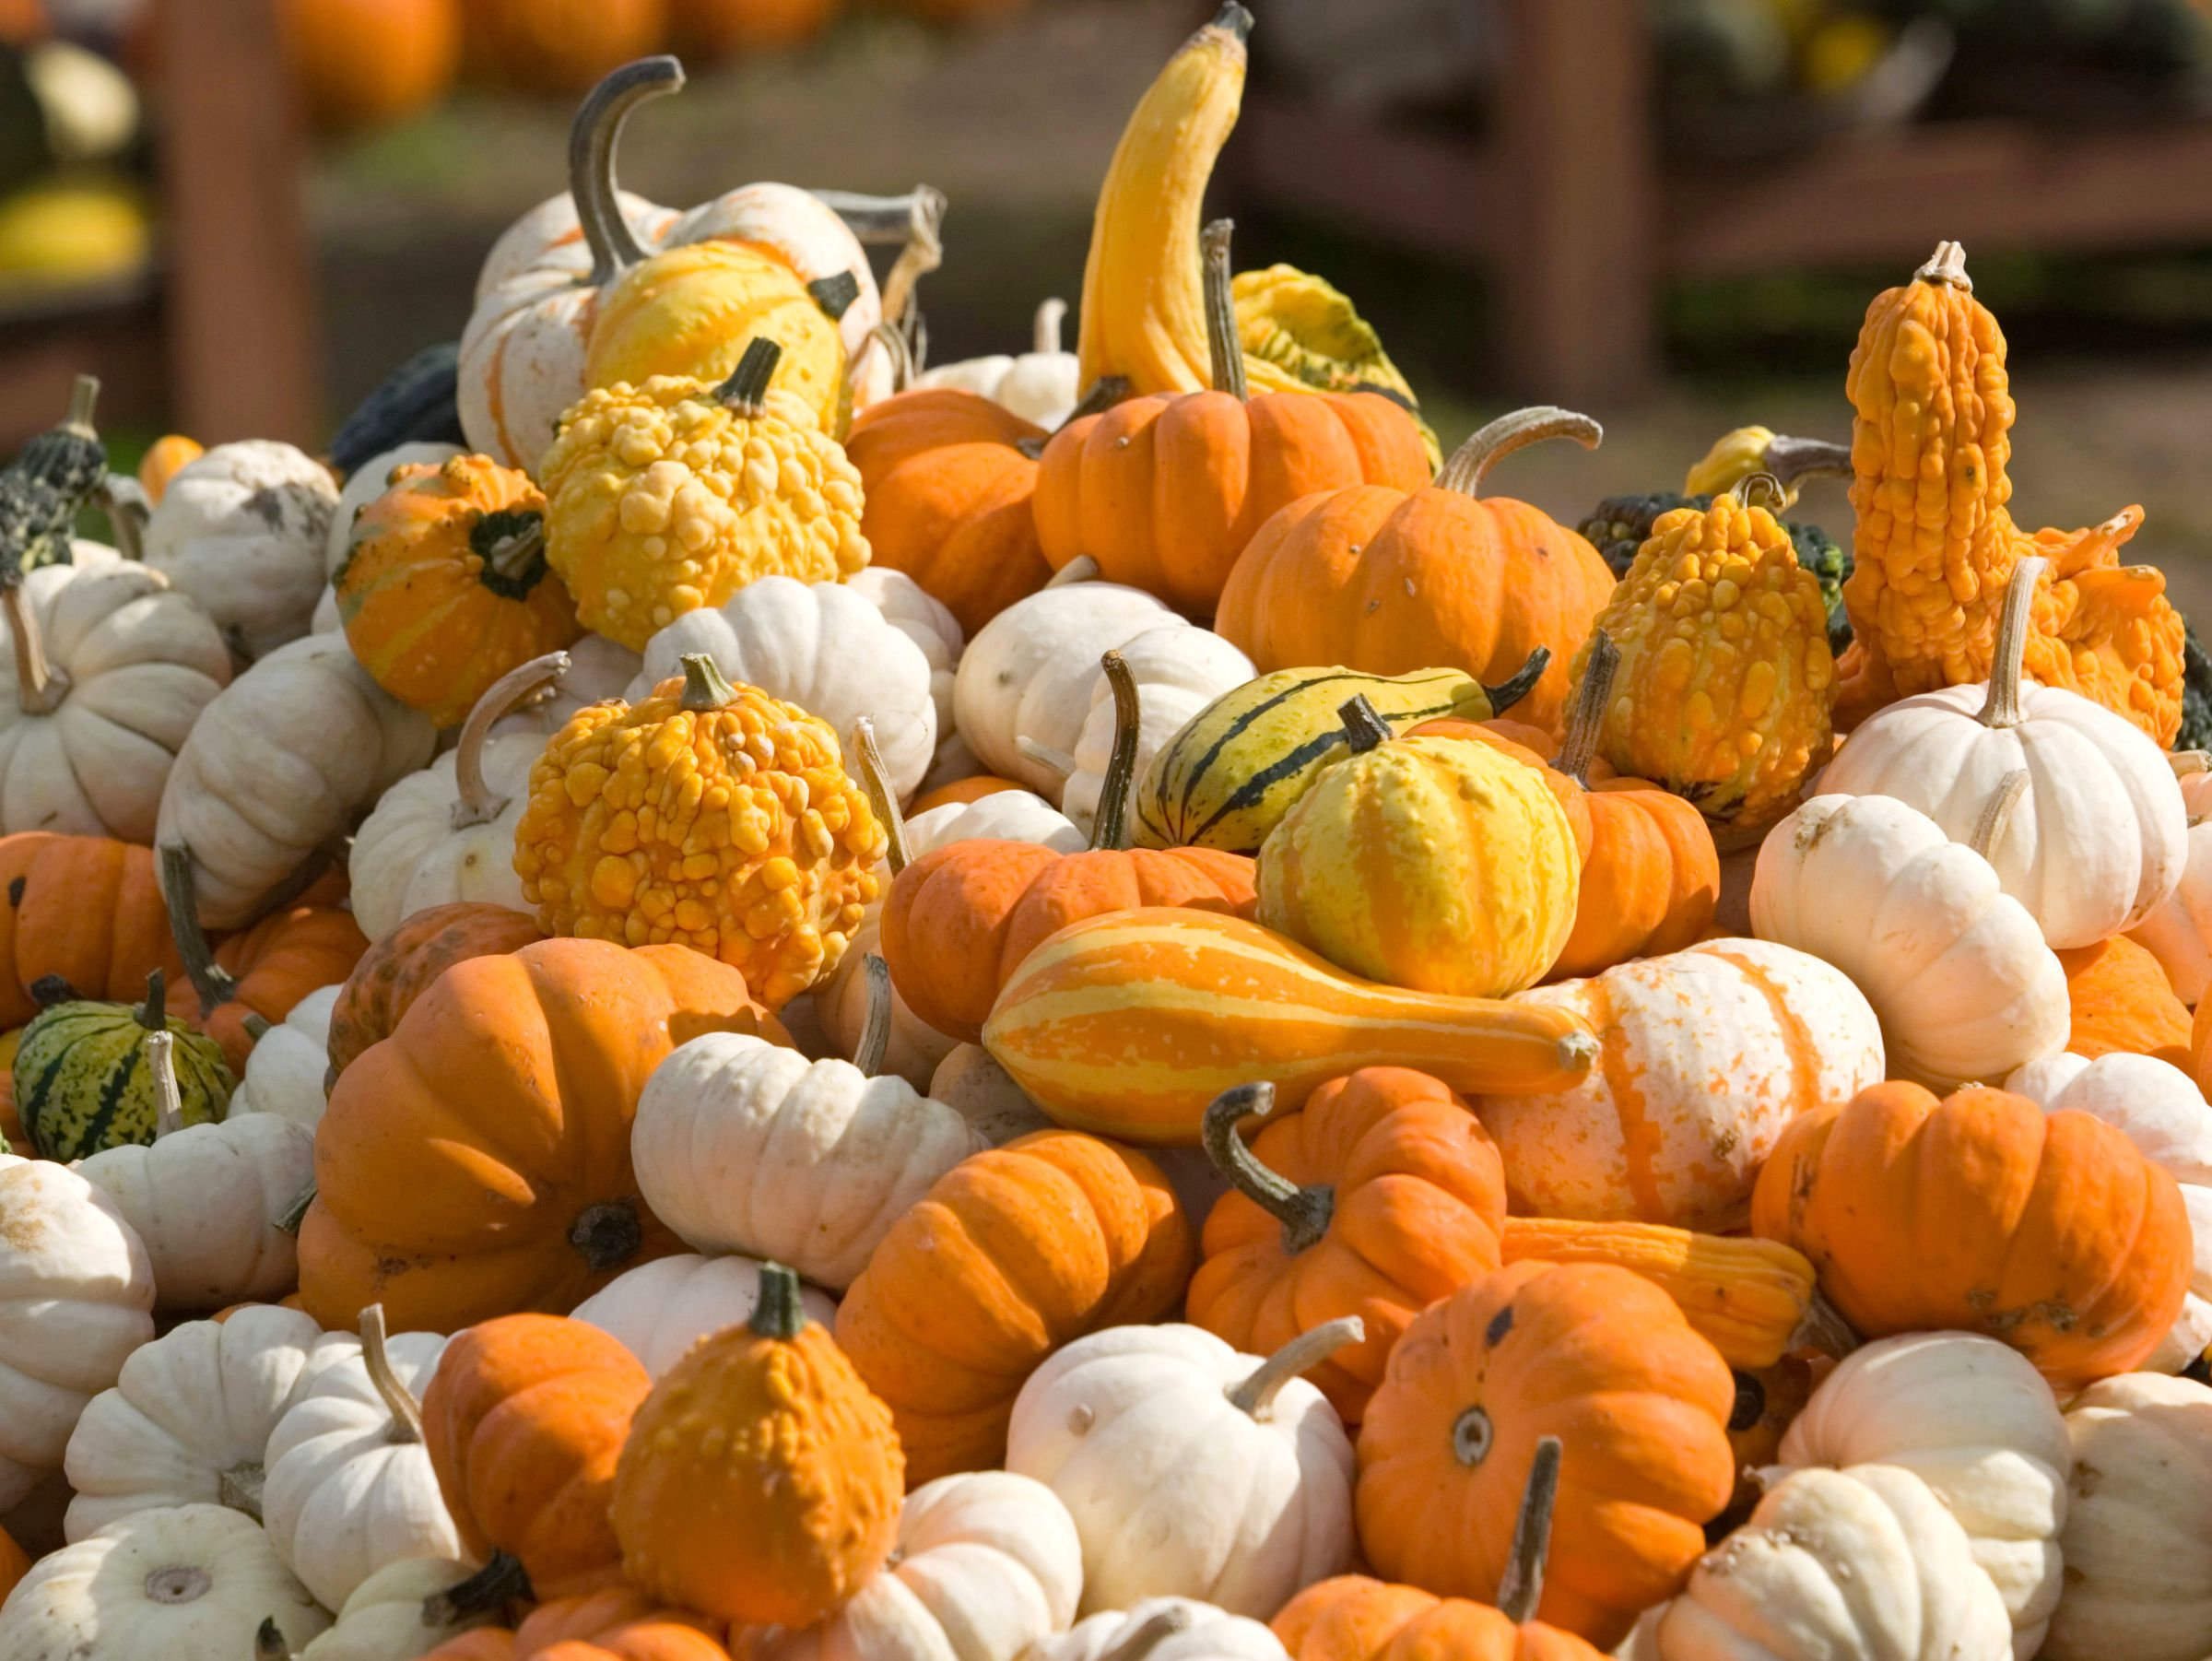 pumpkin equivalents measurements and substitutions